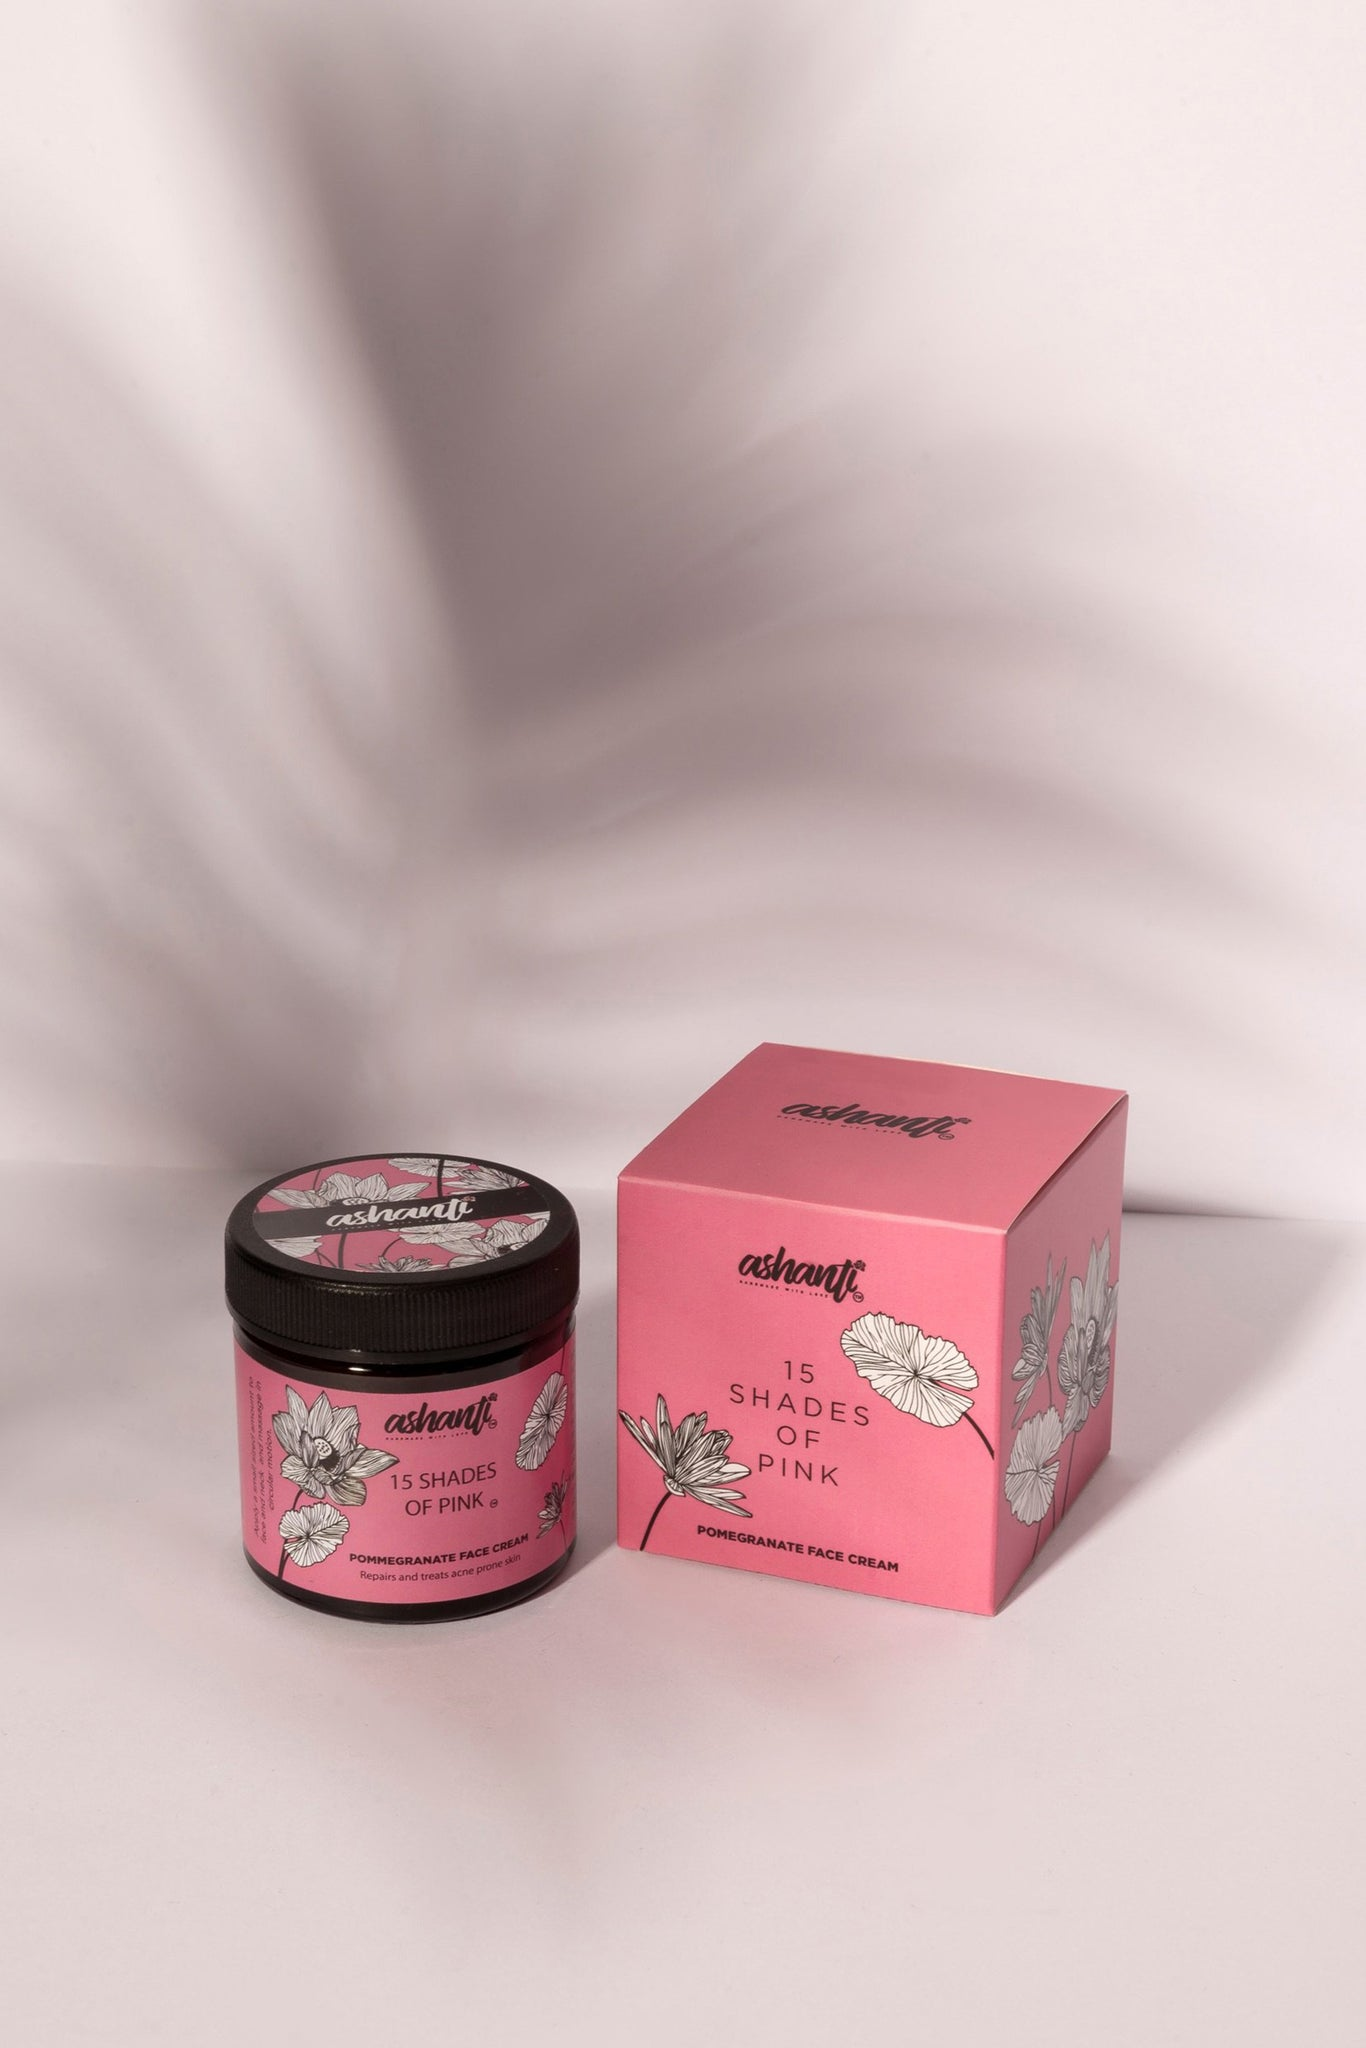 15 SHADES OF PINK - POMEGRANATE FACE CREAM